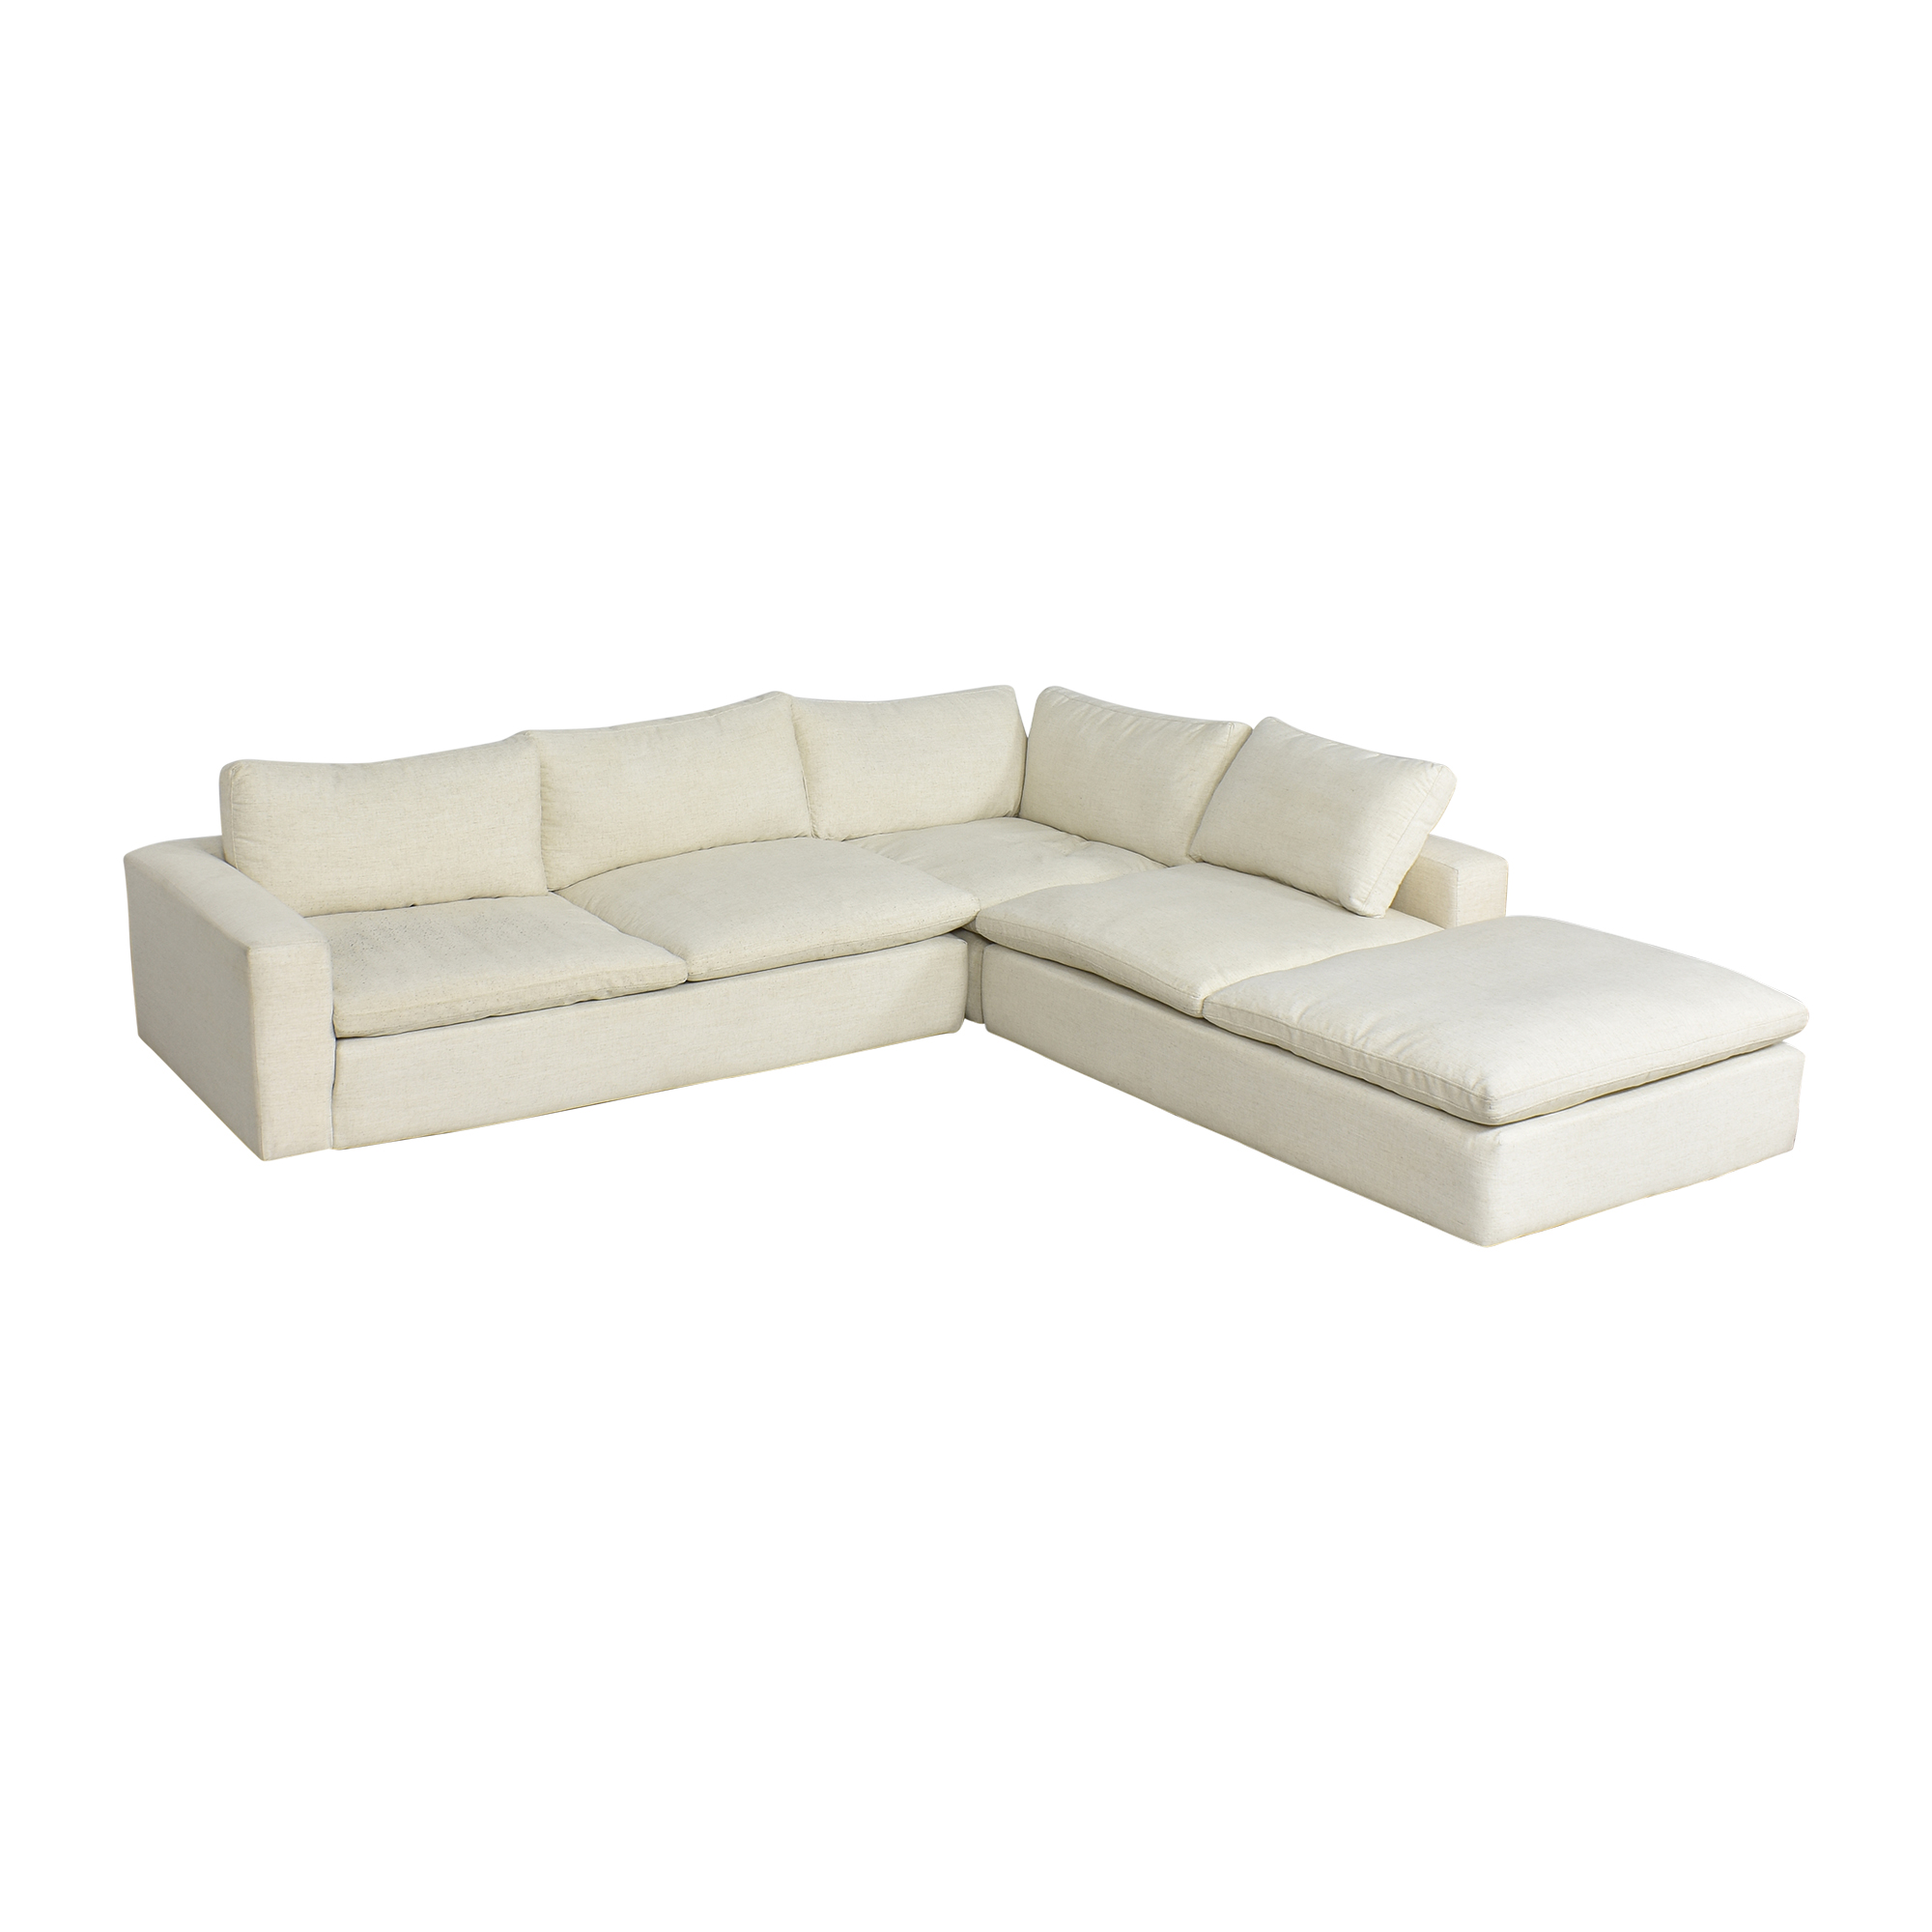 Living Spaces Living Spaces Utopia Three Piece Sectional Sofa price